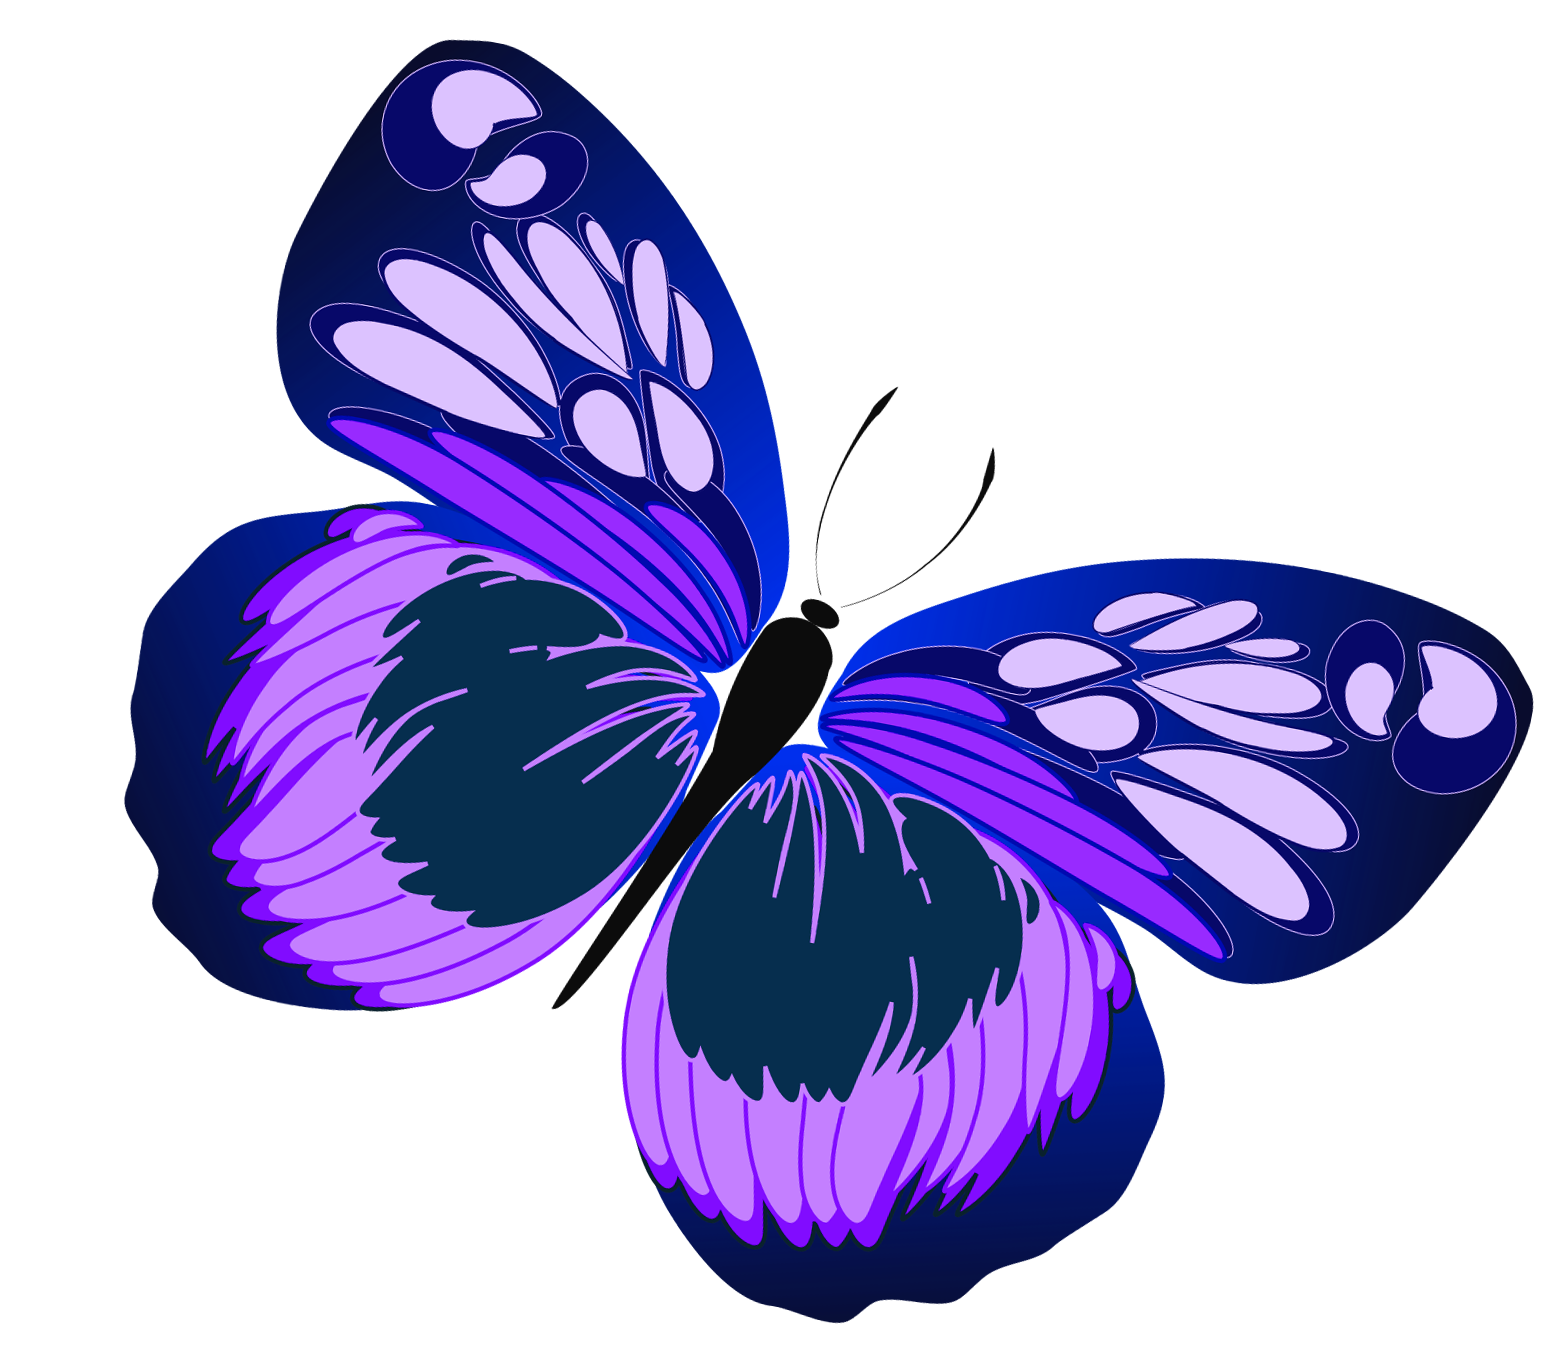 pictures of butterflies clipart at getdrawings com free for rh getdrawings com butterflies clip art black and white butterflies clip art free